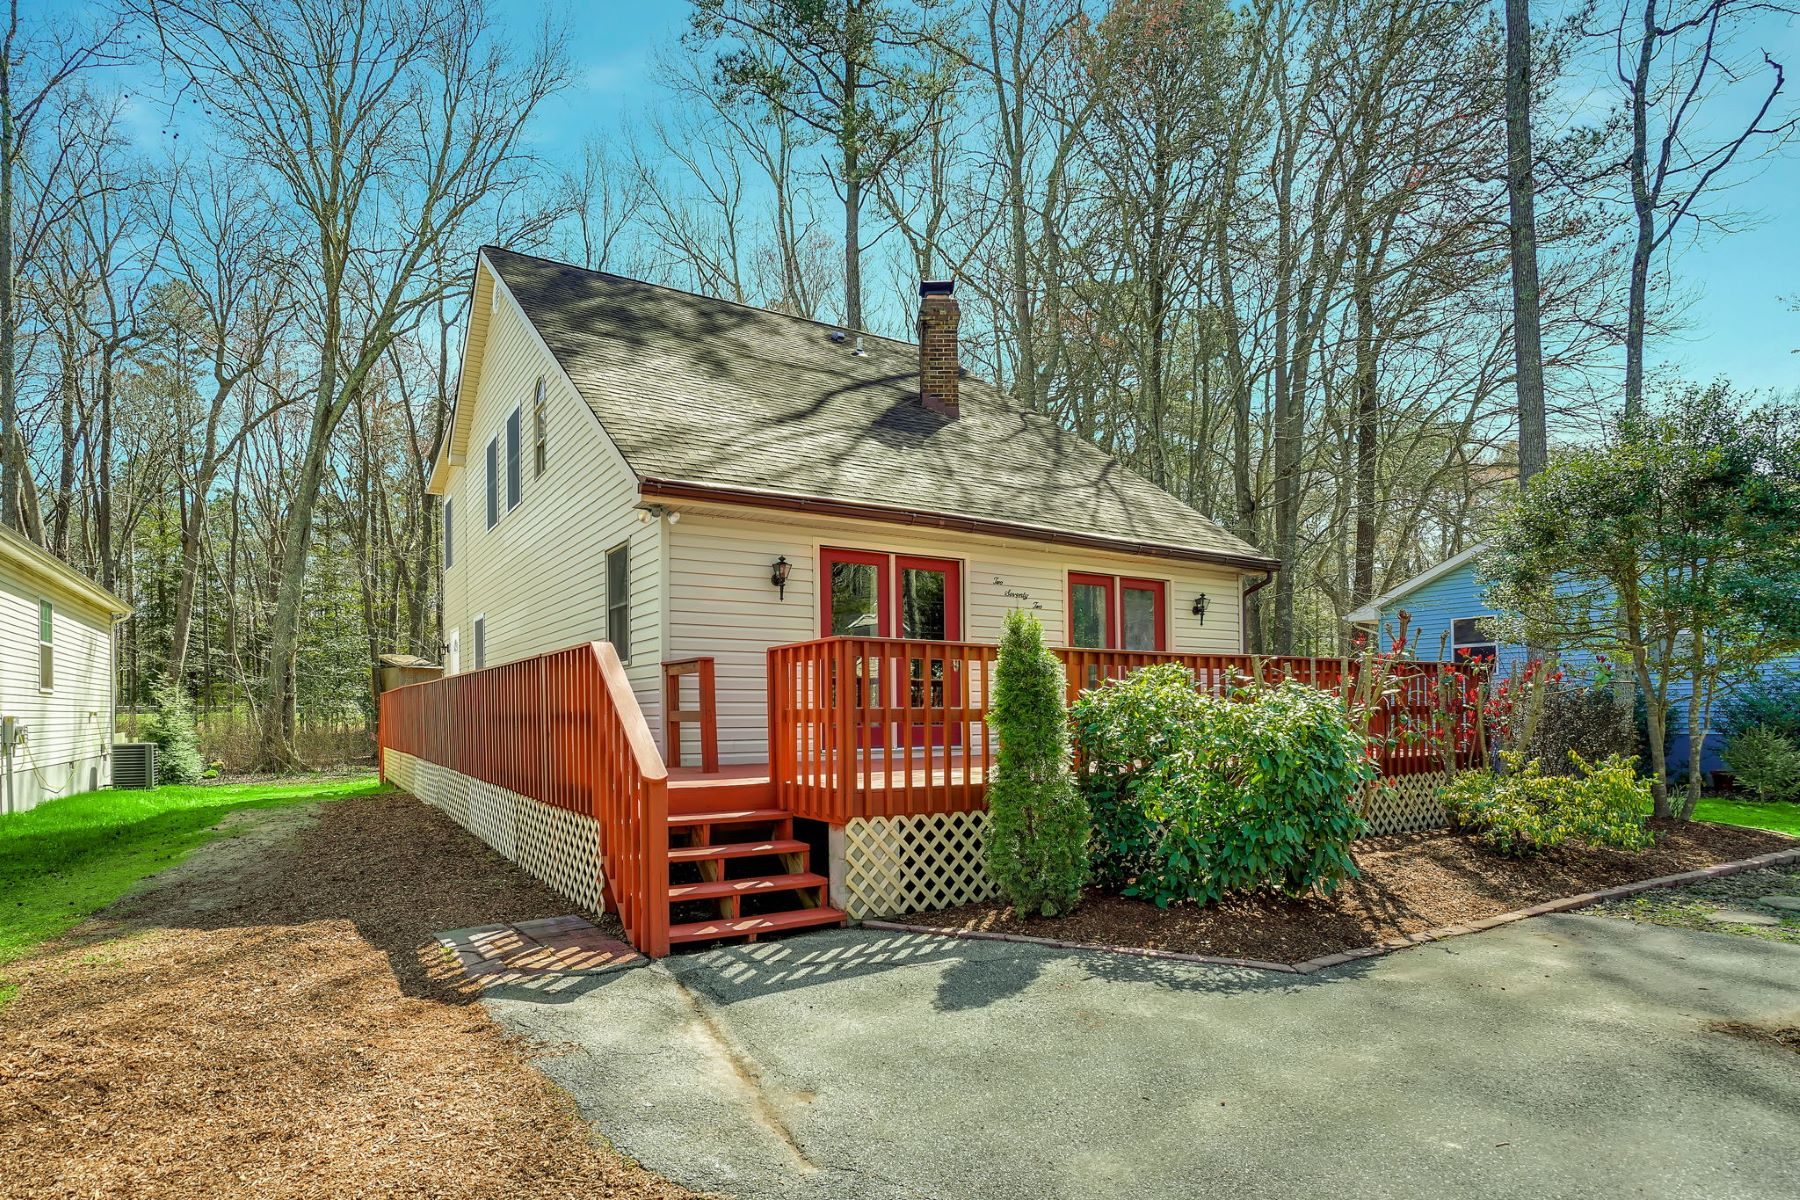 Single Family Homes for Sale at 272 Windjammer Rd Ocean Pines, Maryland 21811 United States